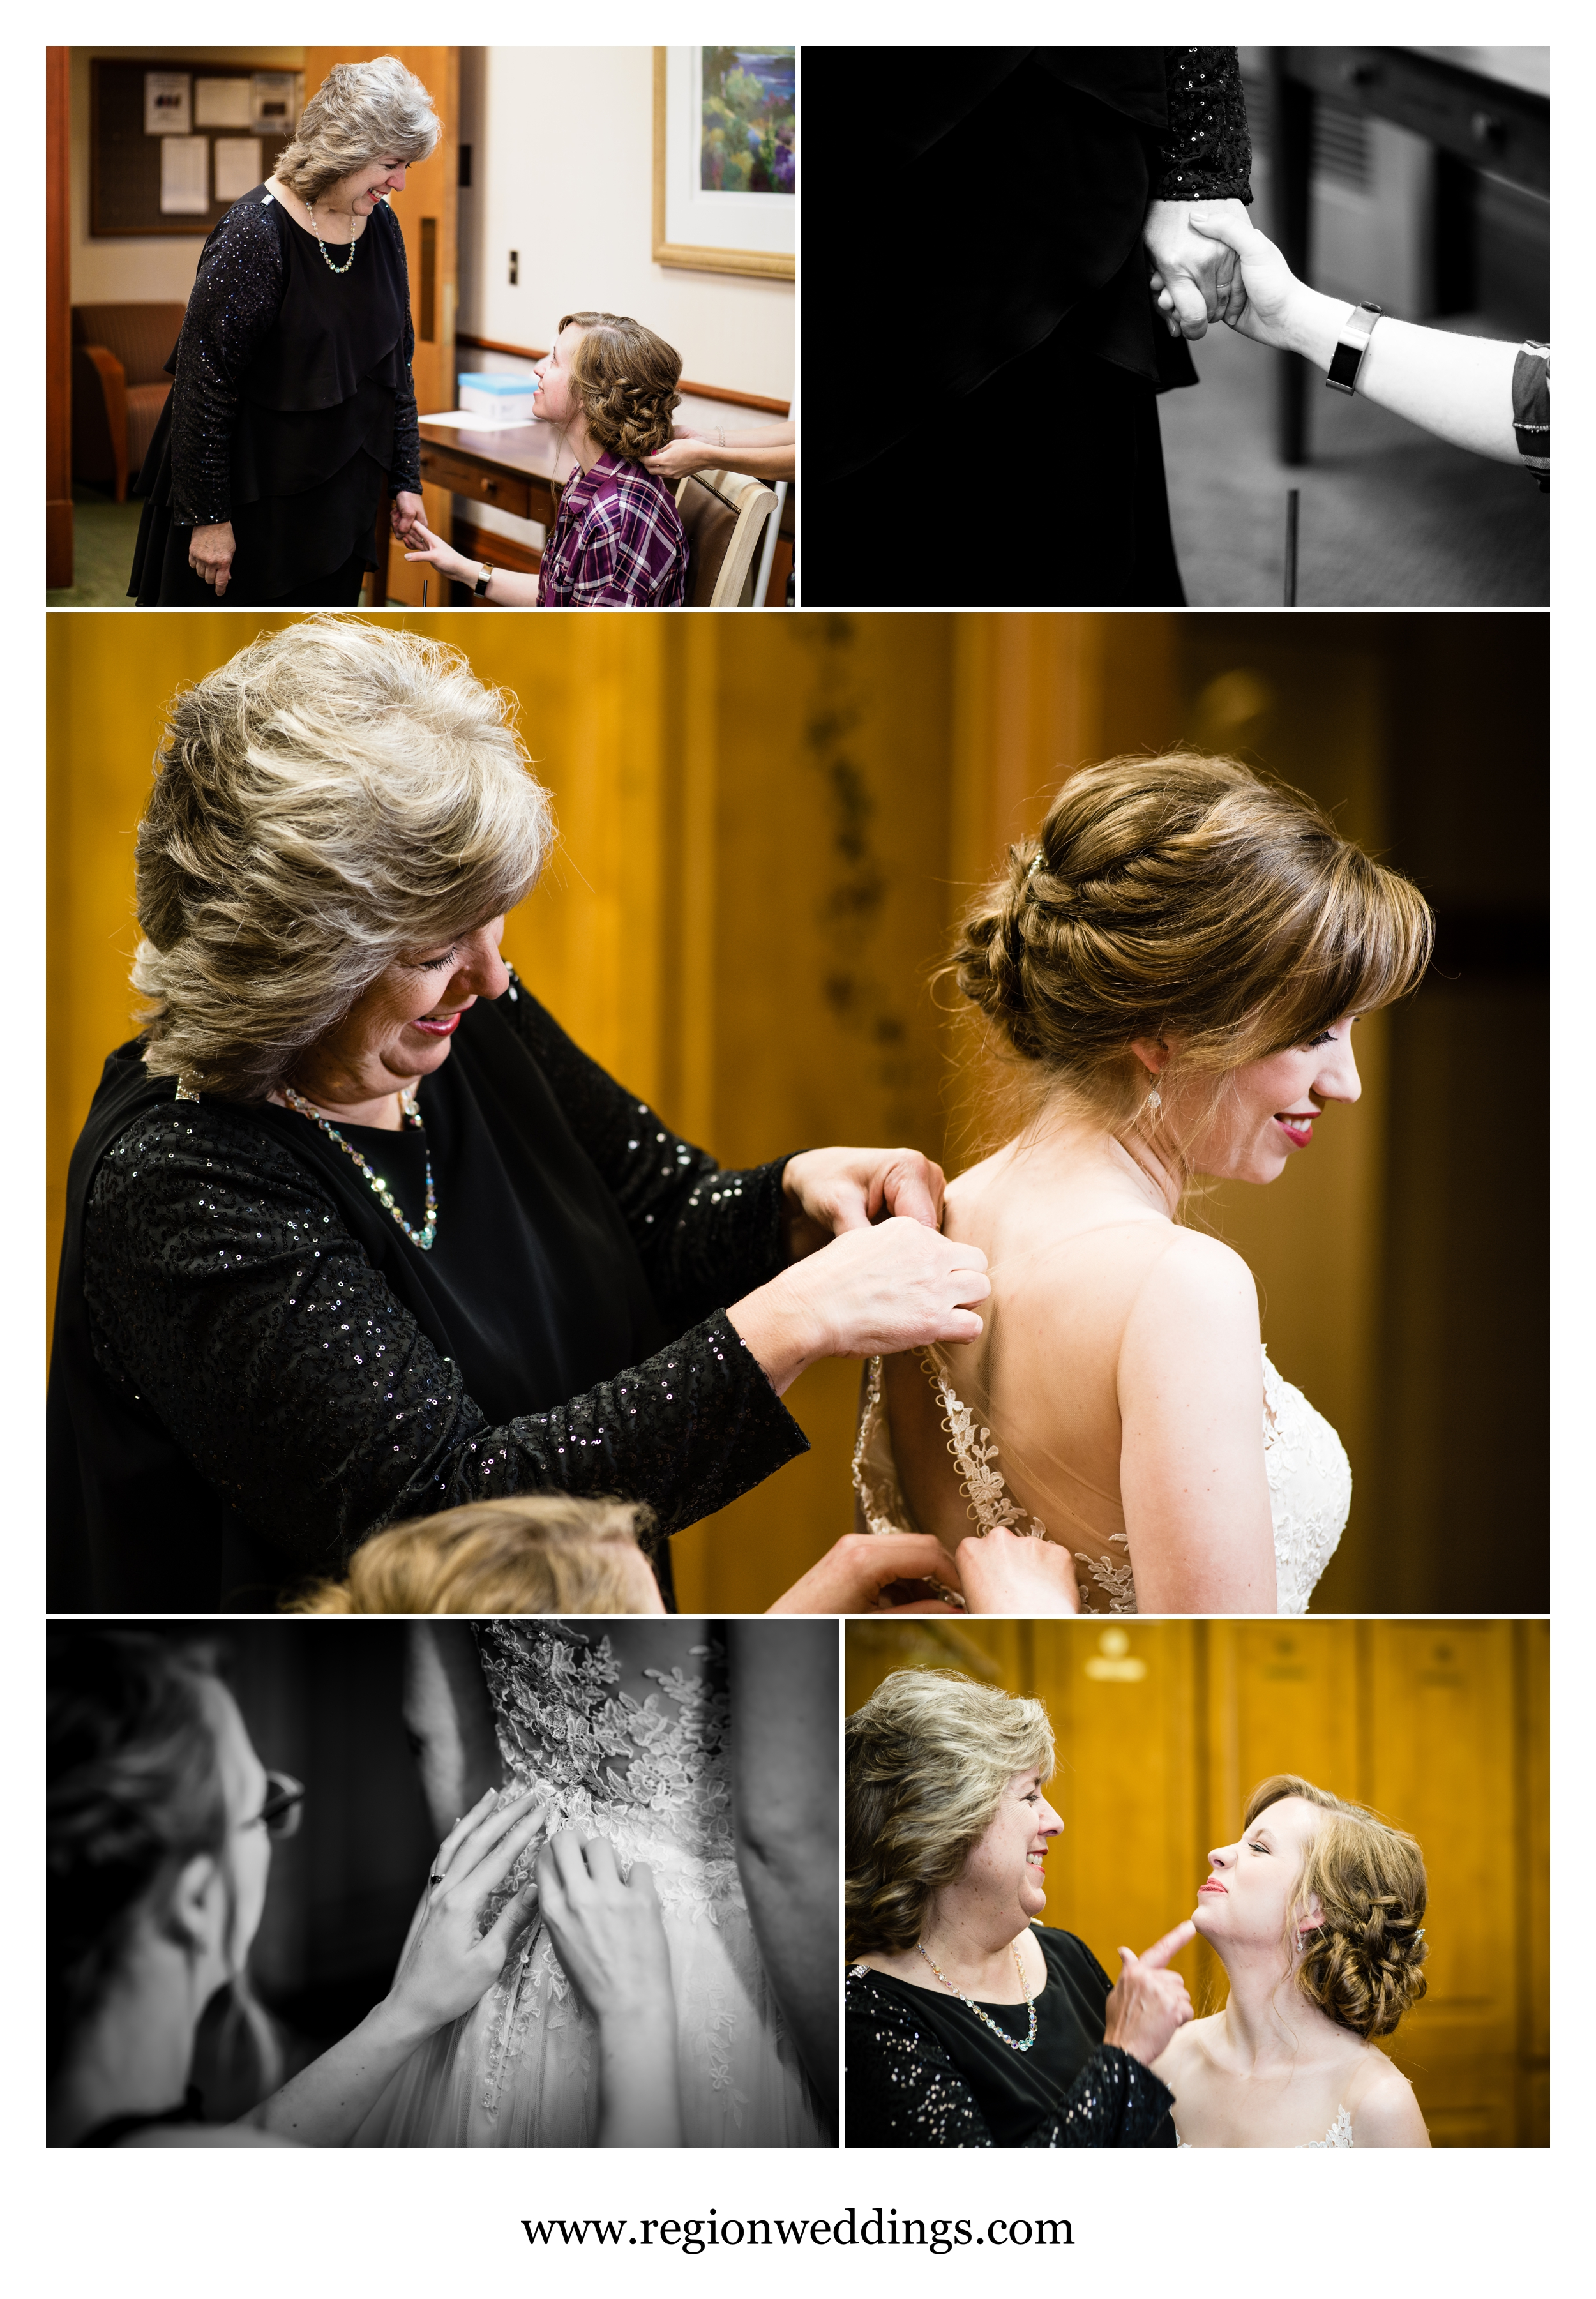 Mother of the bride with her daughter on wedding day.